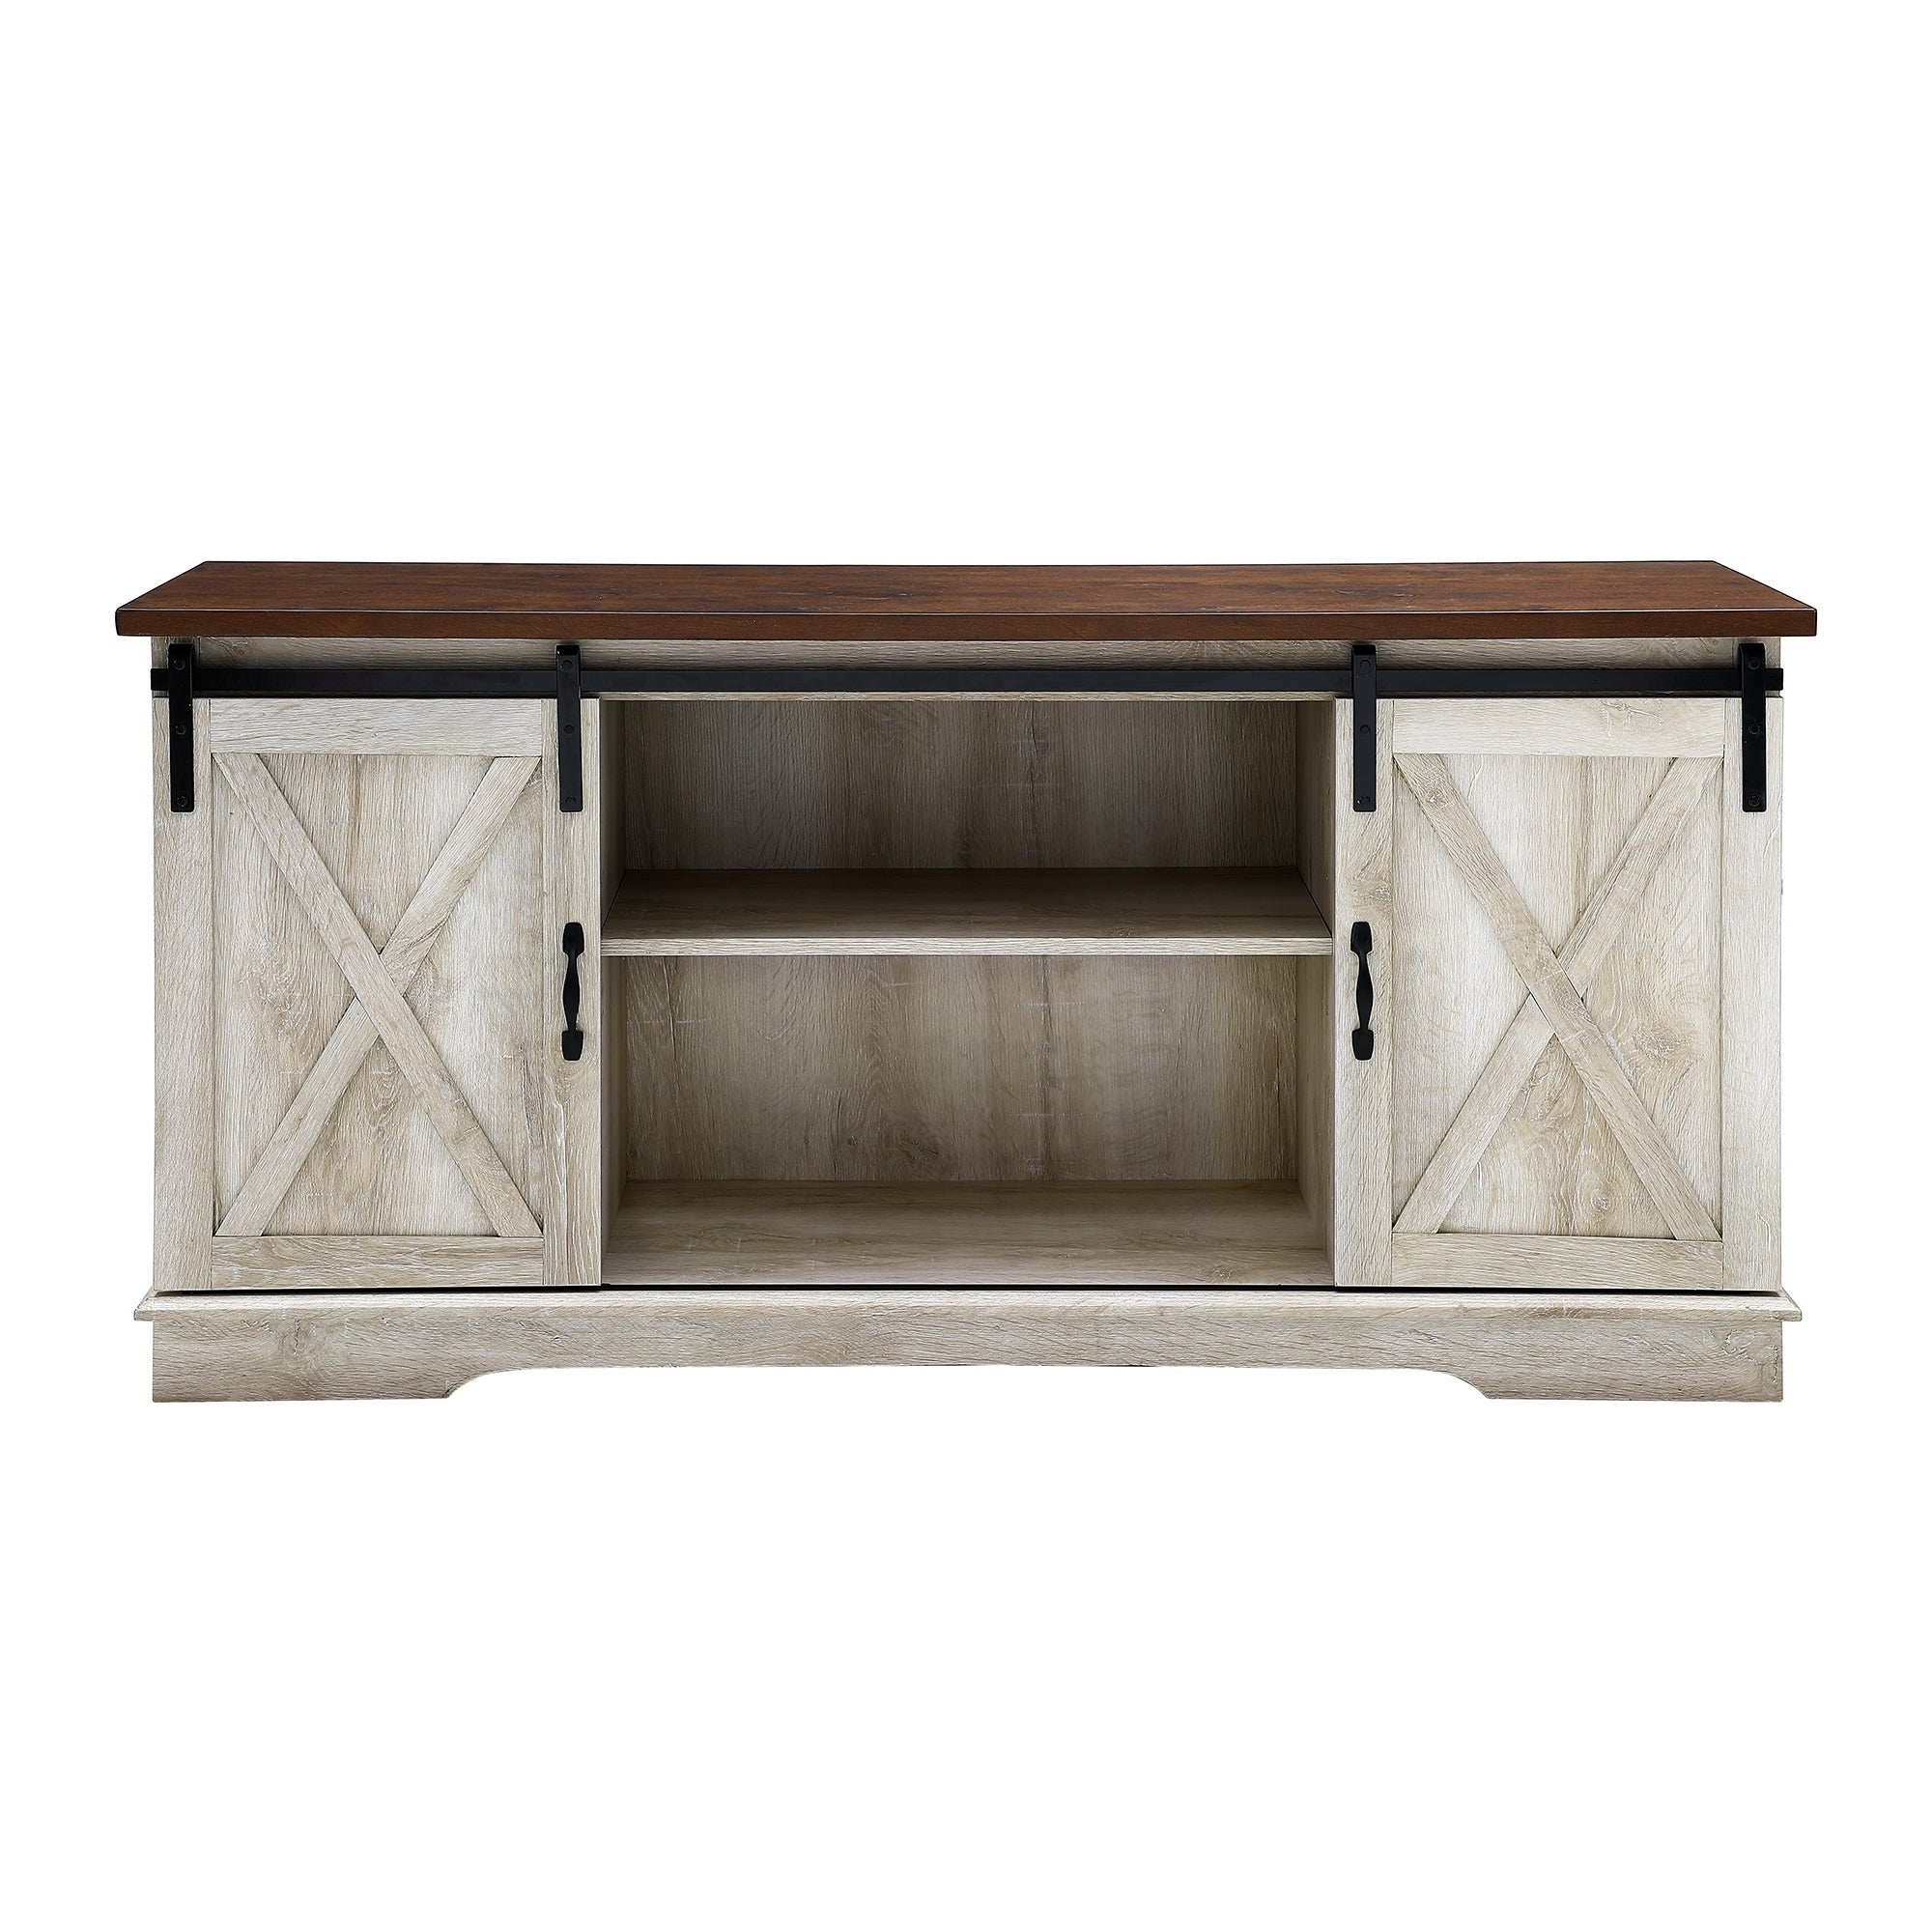 Shop The Gray Barn Wind Gap Rustic Sliding Barn Door Tv Console